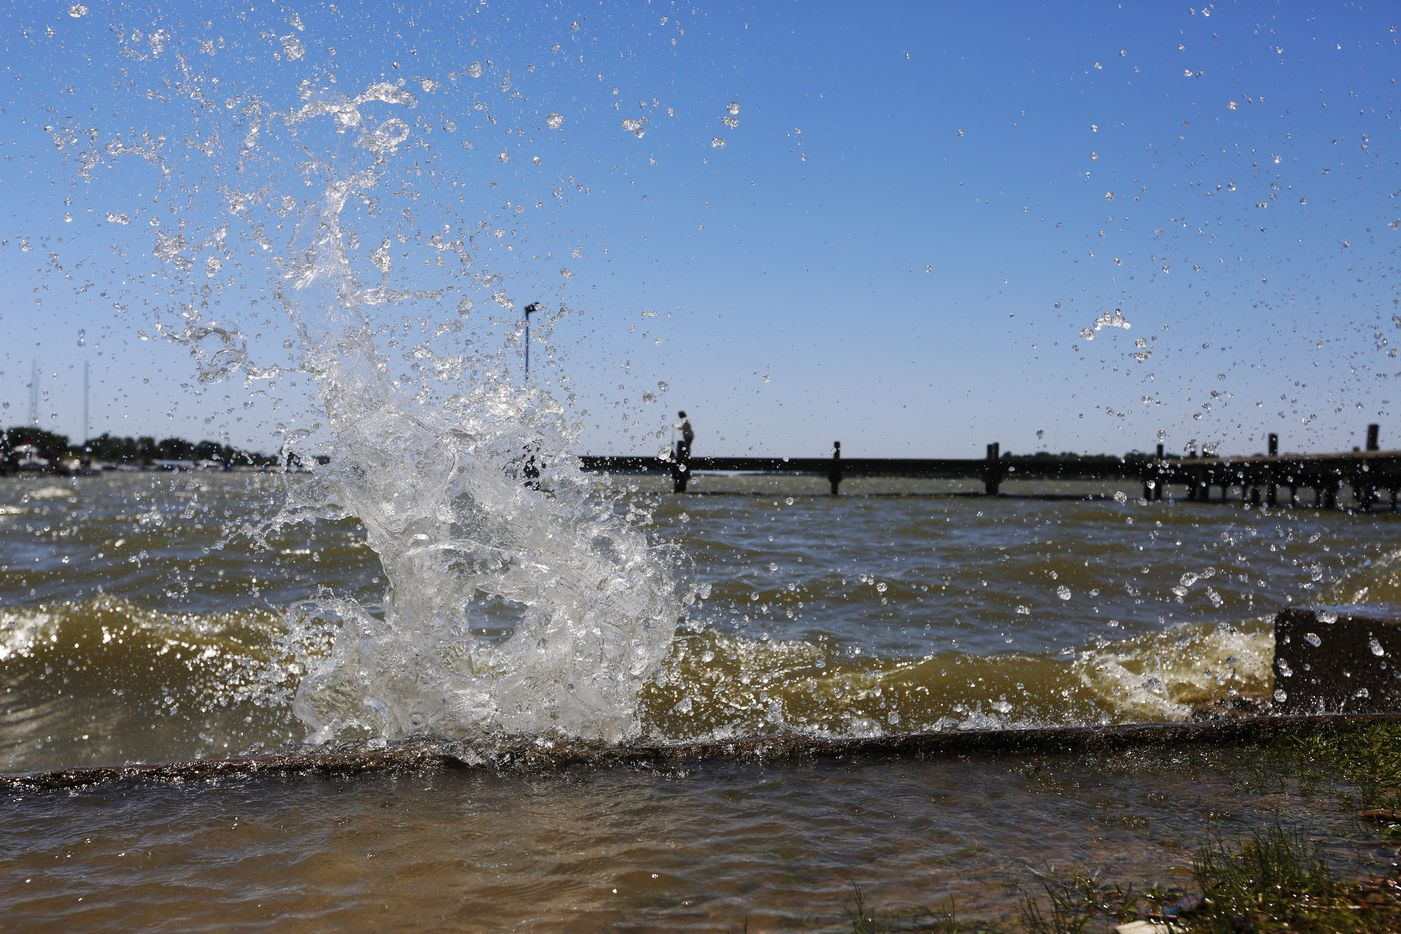 Strong winds blow water against the shore of White Rock Lake in May 2017.